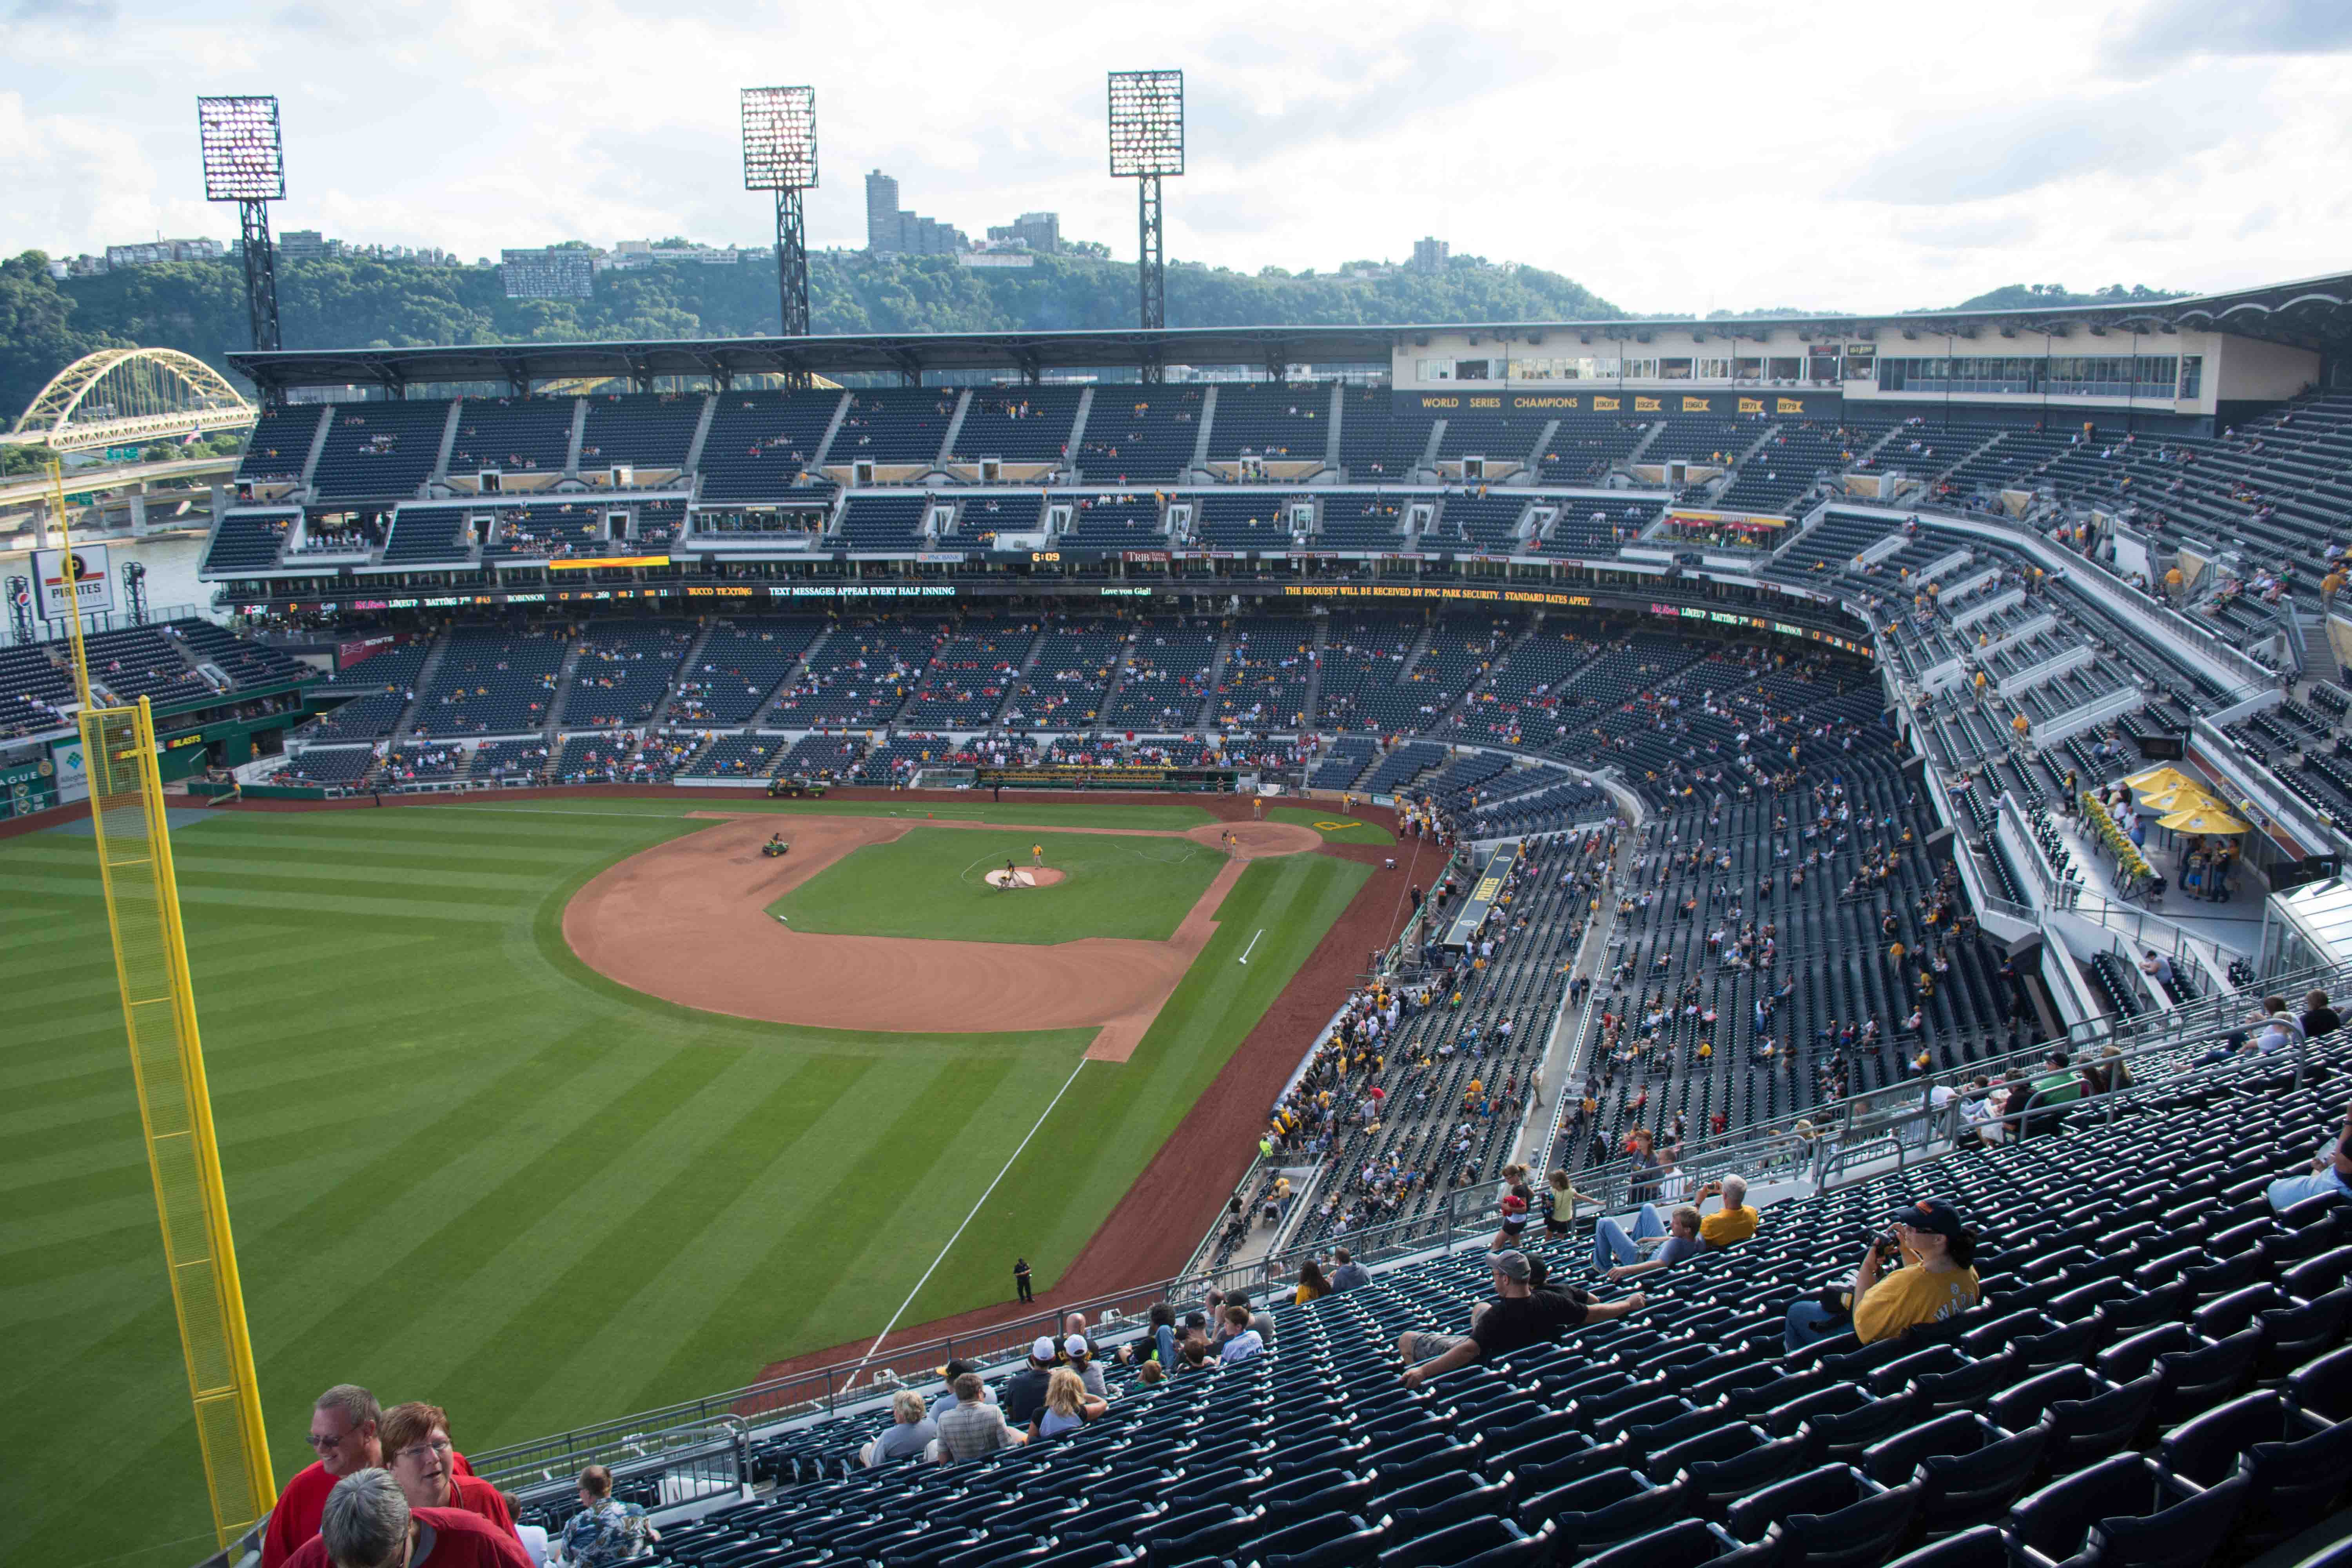 Best Seats For Pittsburgh Pirates At PNC Park - Pnc park map seating